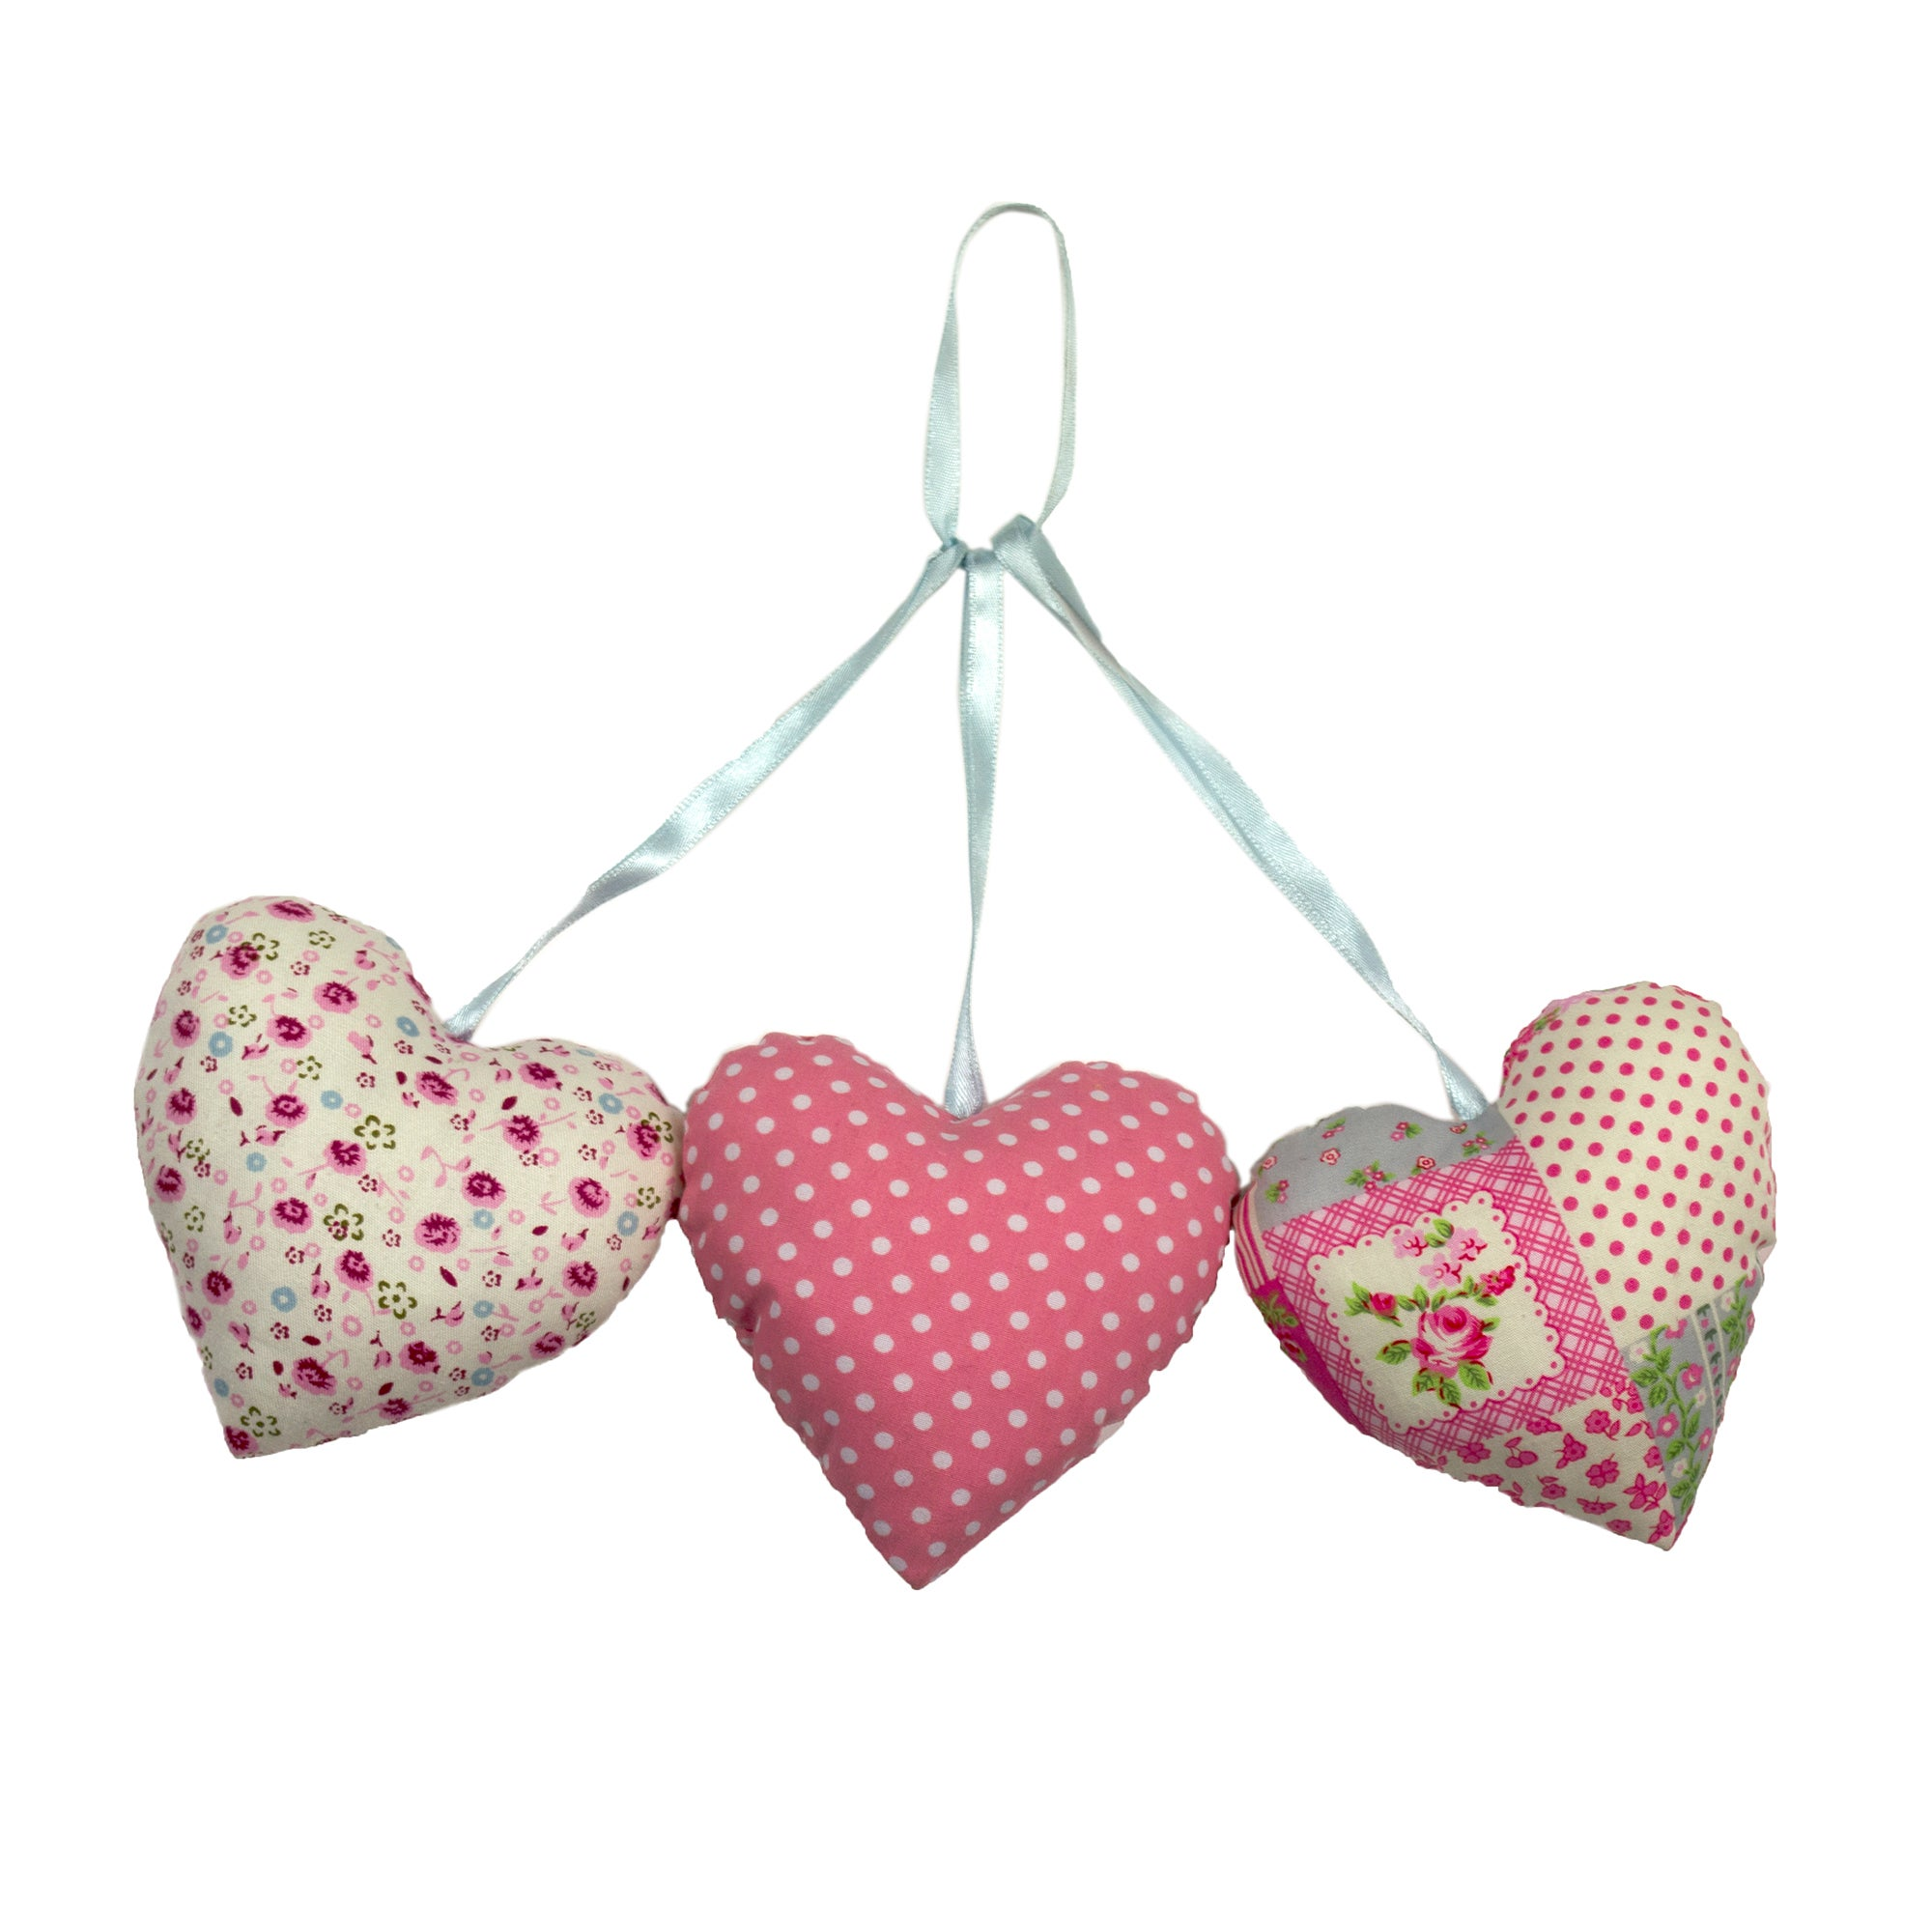 Rose and Ellis Clarendon Collection Hanging Hearts